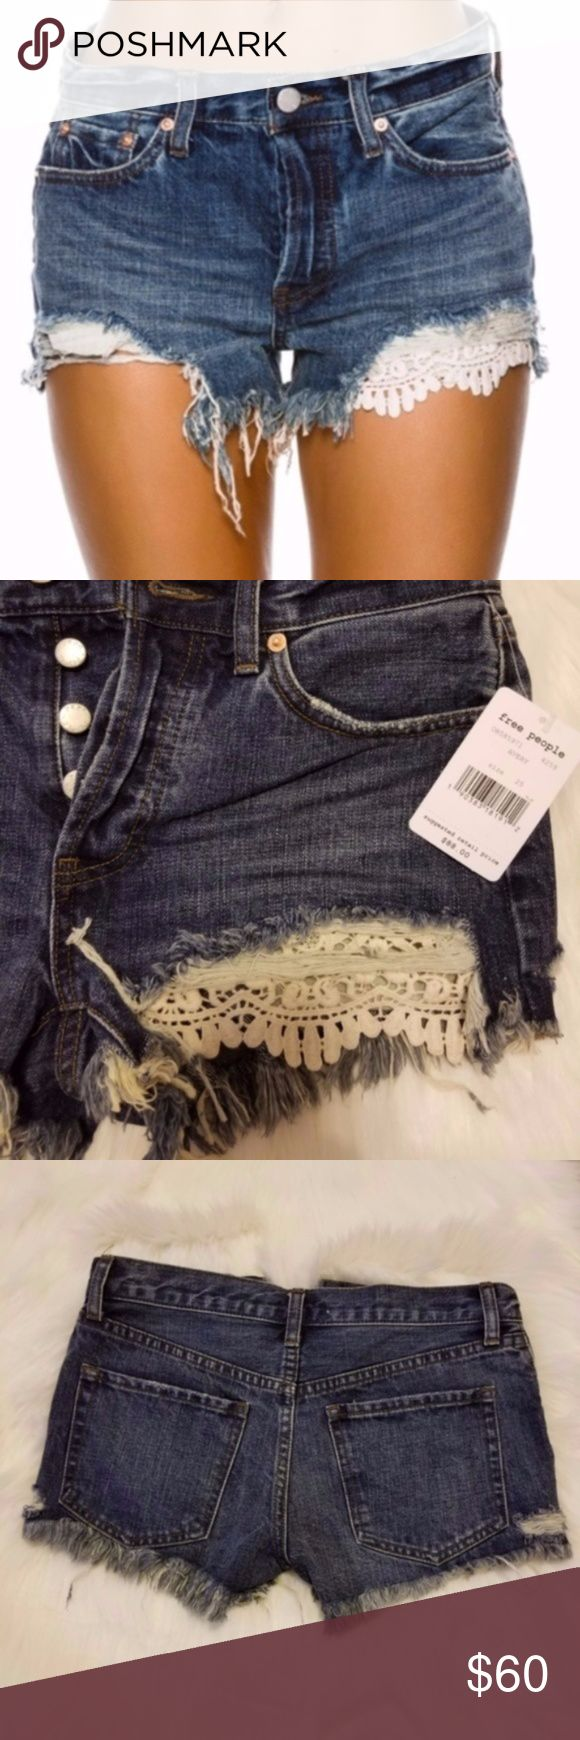 """FREE PEOPLE Daisy Chain Lace Frayed Shorts SIZE 25 Free People Daisy Chain Lace Shorts. Women's denim shorts. Non-stretch rigid denim. Five-pocket style. Button fly closure. Distressed detailing. Raw hem featuring peek-a-boo crochet trim. 2.5"""" inseam length. 100% Cotton.  New from smoke and pet free home. Sorry, no modeling.  Don't look at prices, make me an offer instead. Bundle encouraged. Due to the many variations in monitors and browsers, color may appear different. Free People Shorts…"""